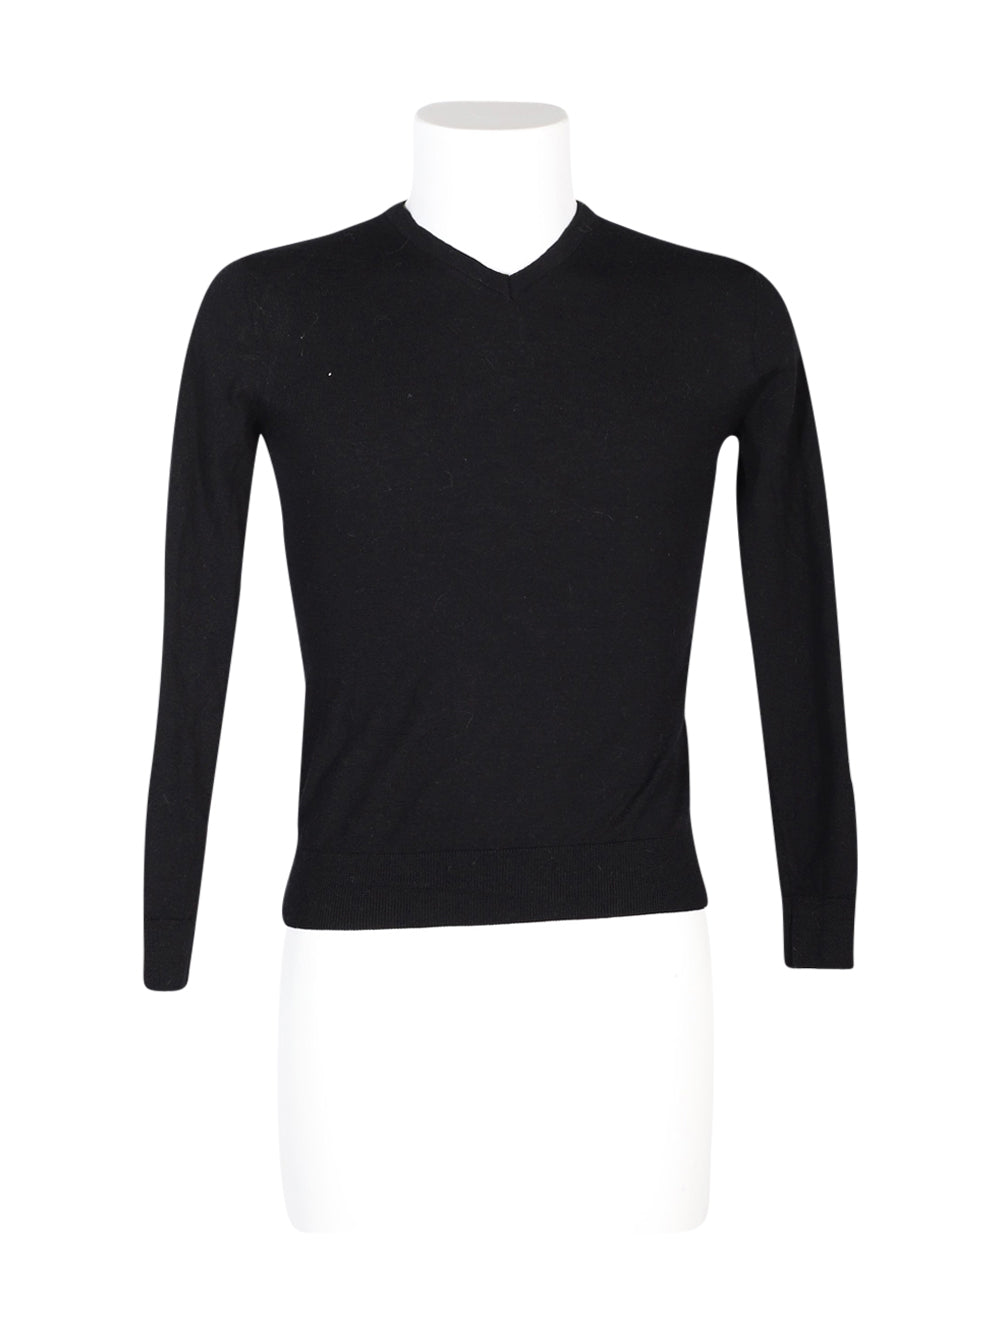 Front photo of Preloved Zara Black Man's sweater - size 36/S